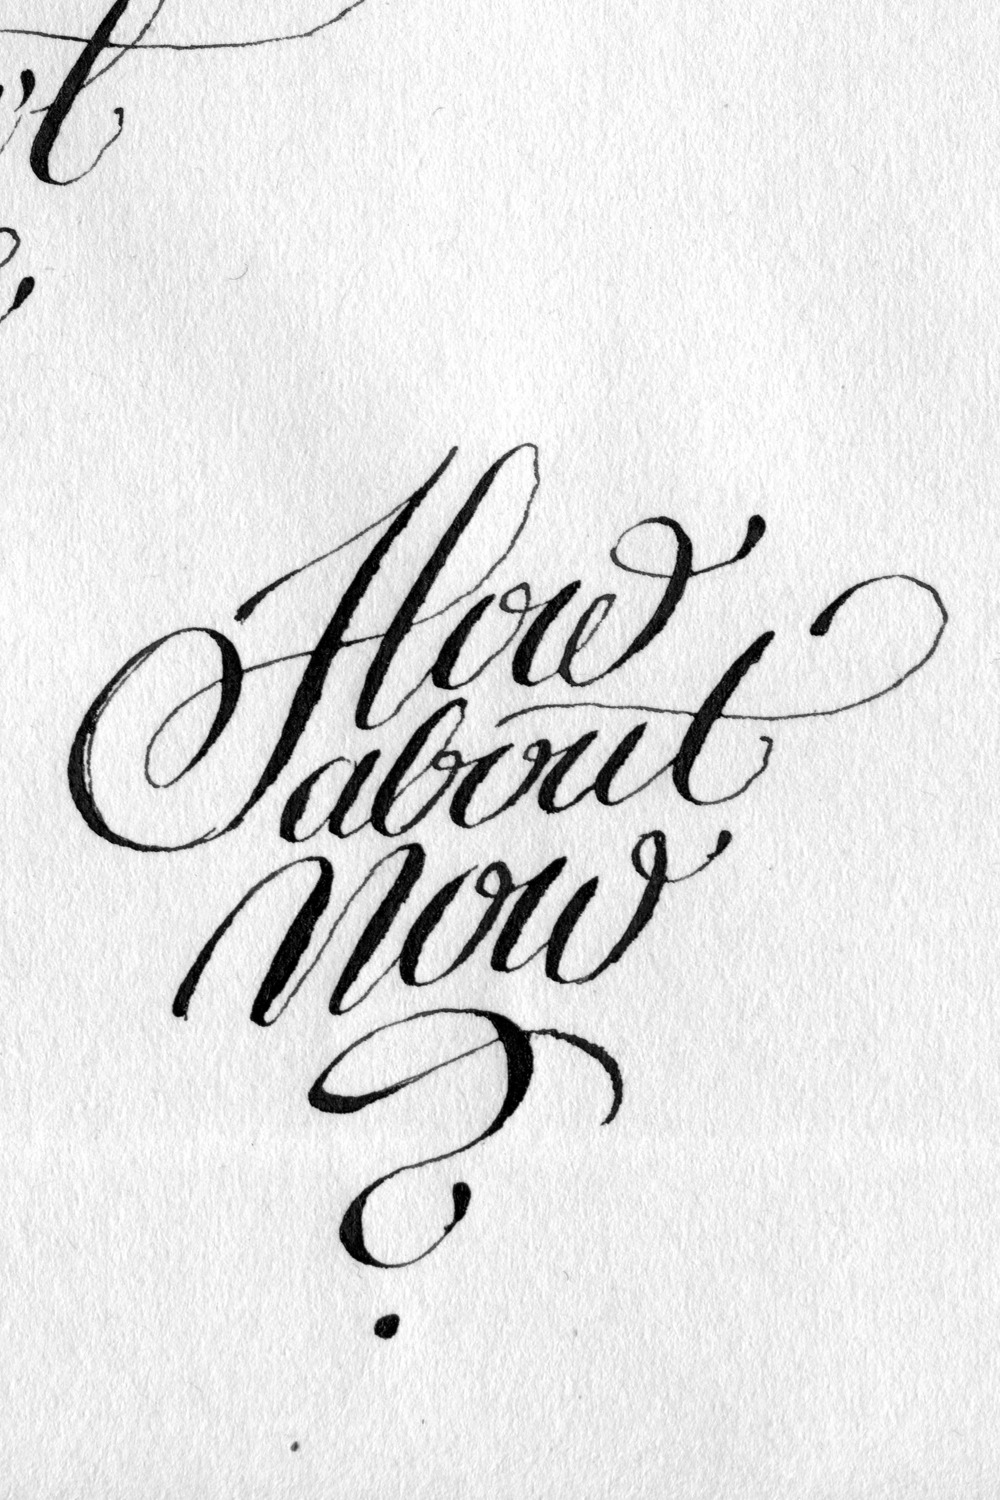 Calligraphi.ca - how about now? - copperplate nib and ink on paper - Theosone